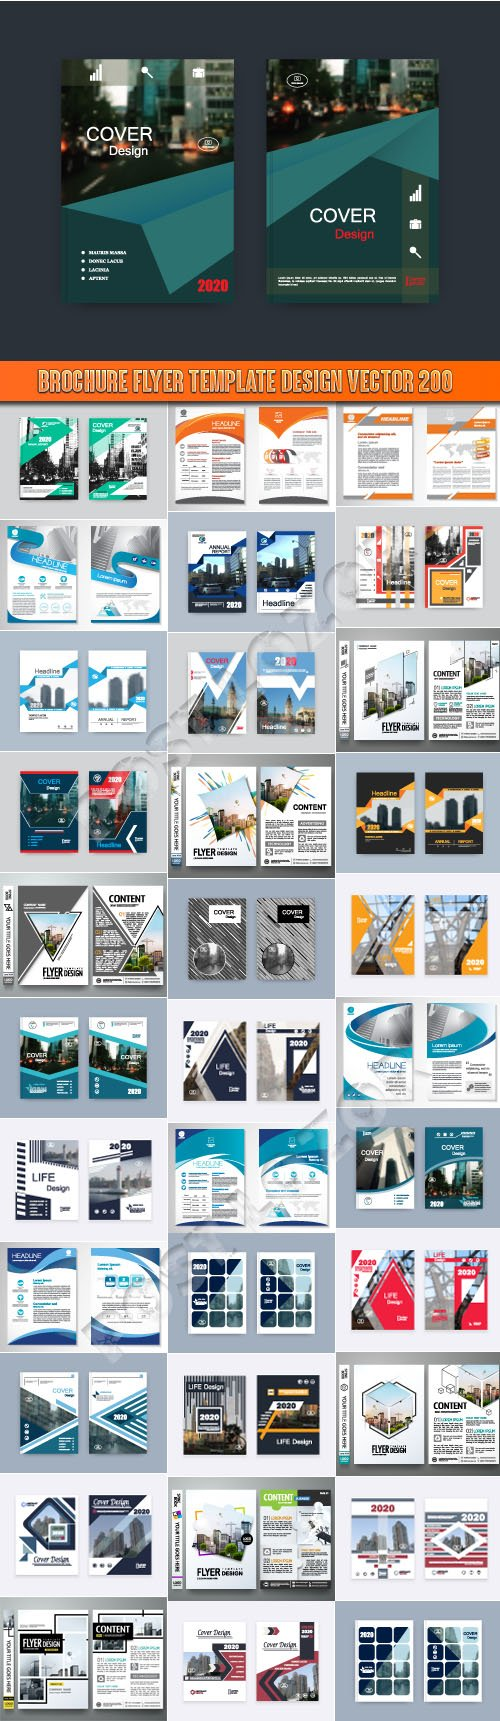 Brochure flyer template design vector 200